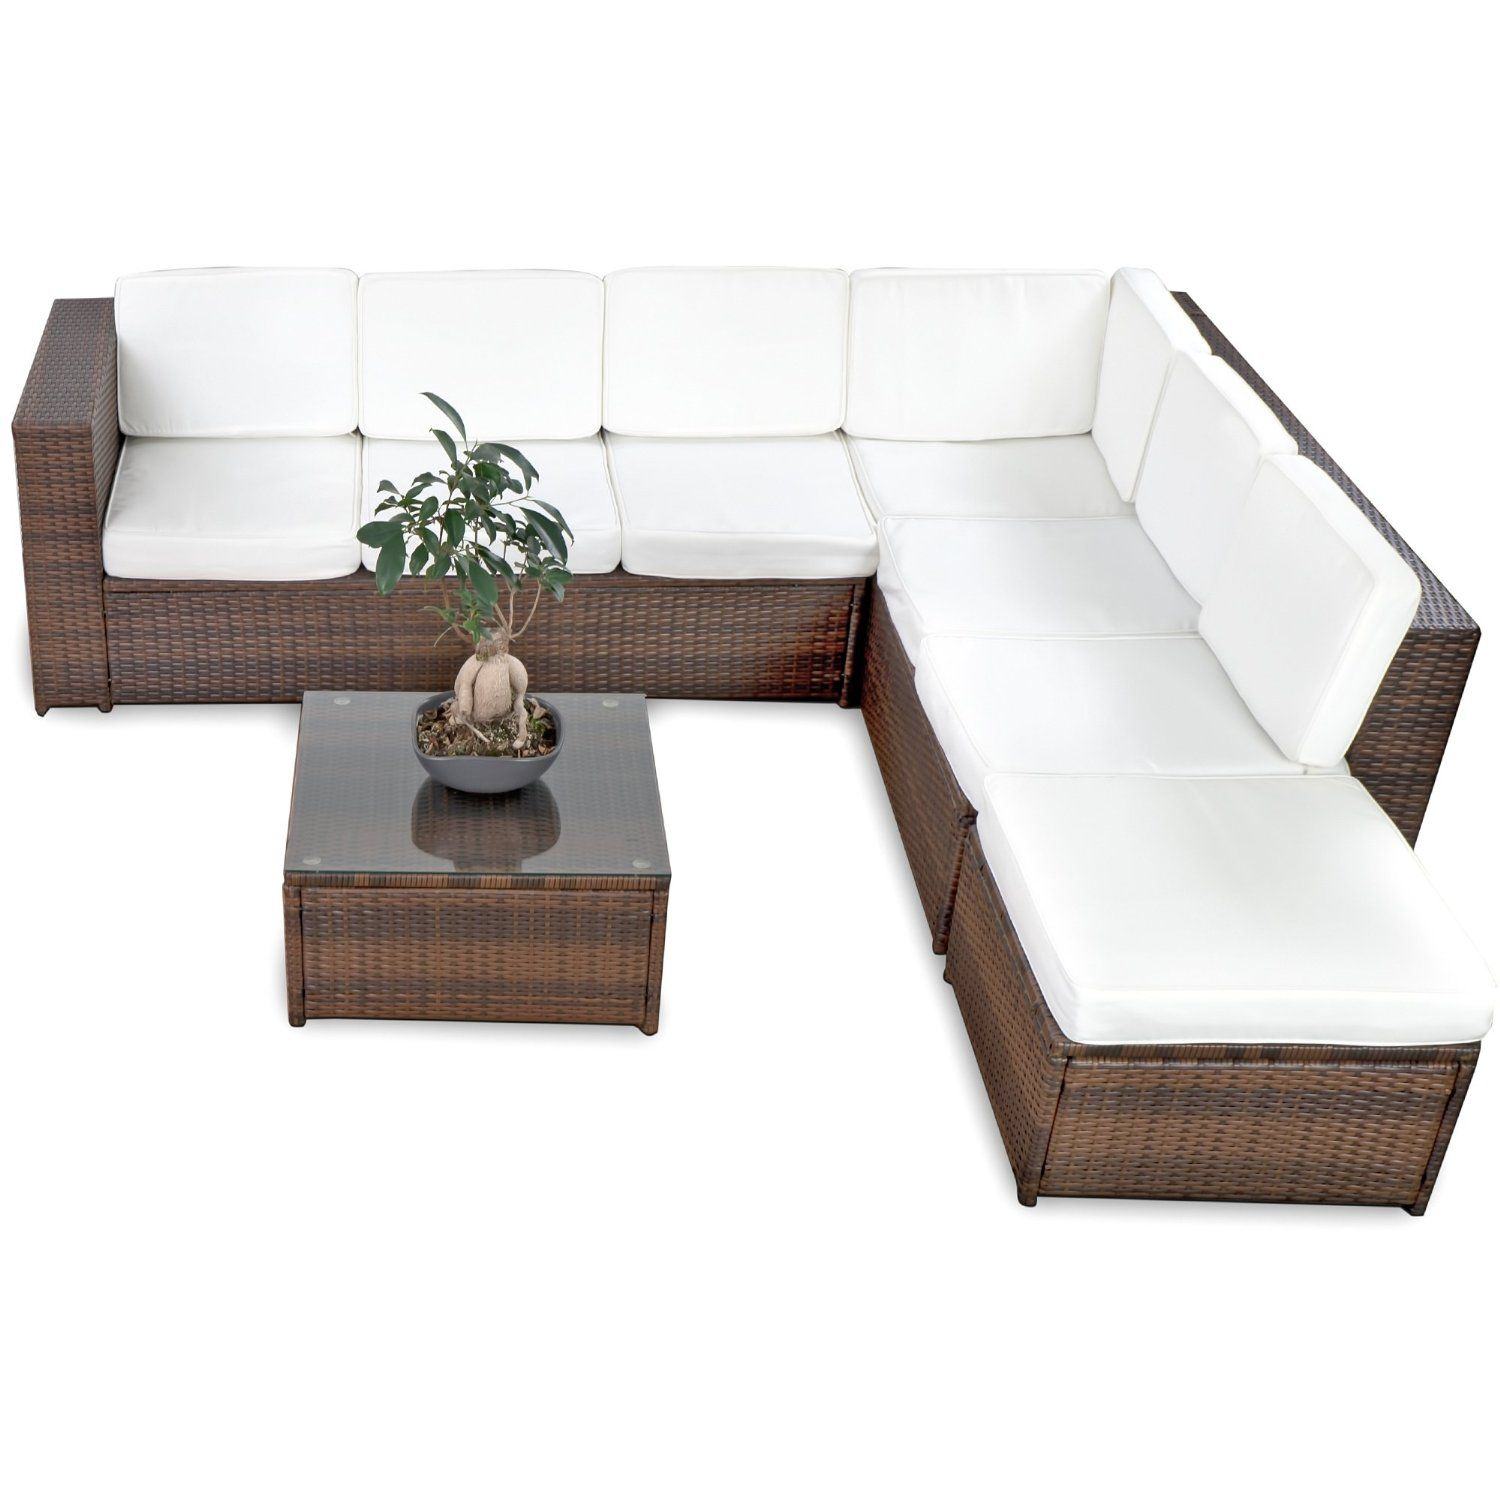 Downtown Kapljanje Všeč Rattan Lounge Ecksofa Amazon Communitygardenclubofcohasset Org